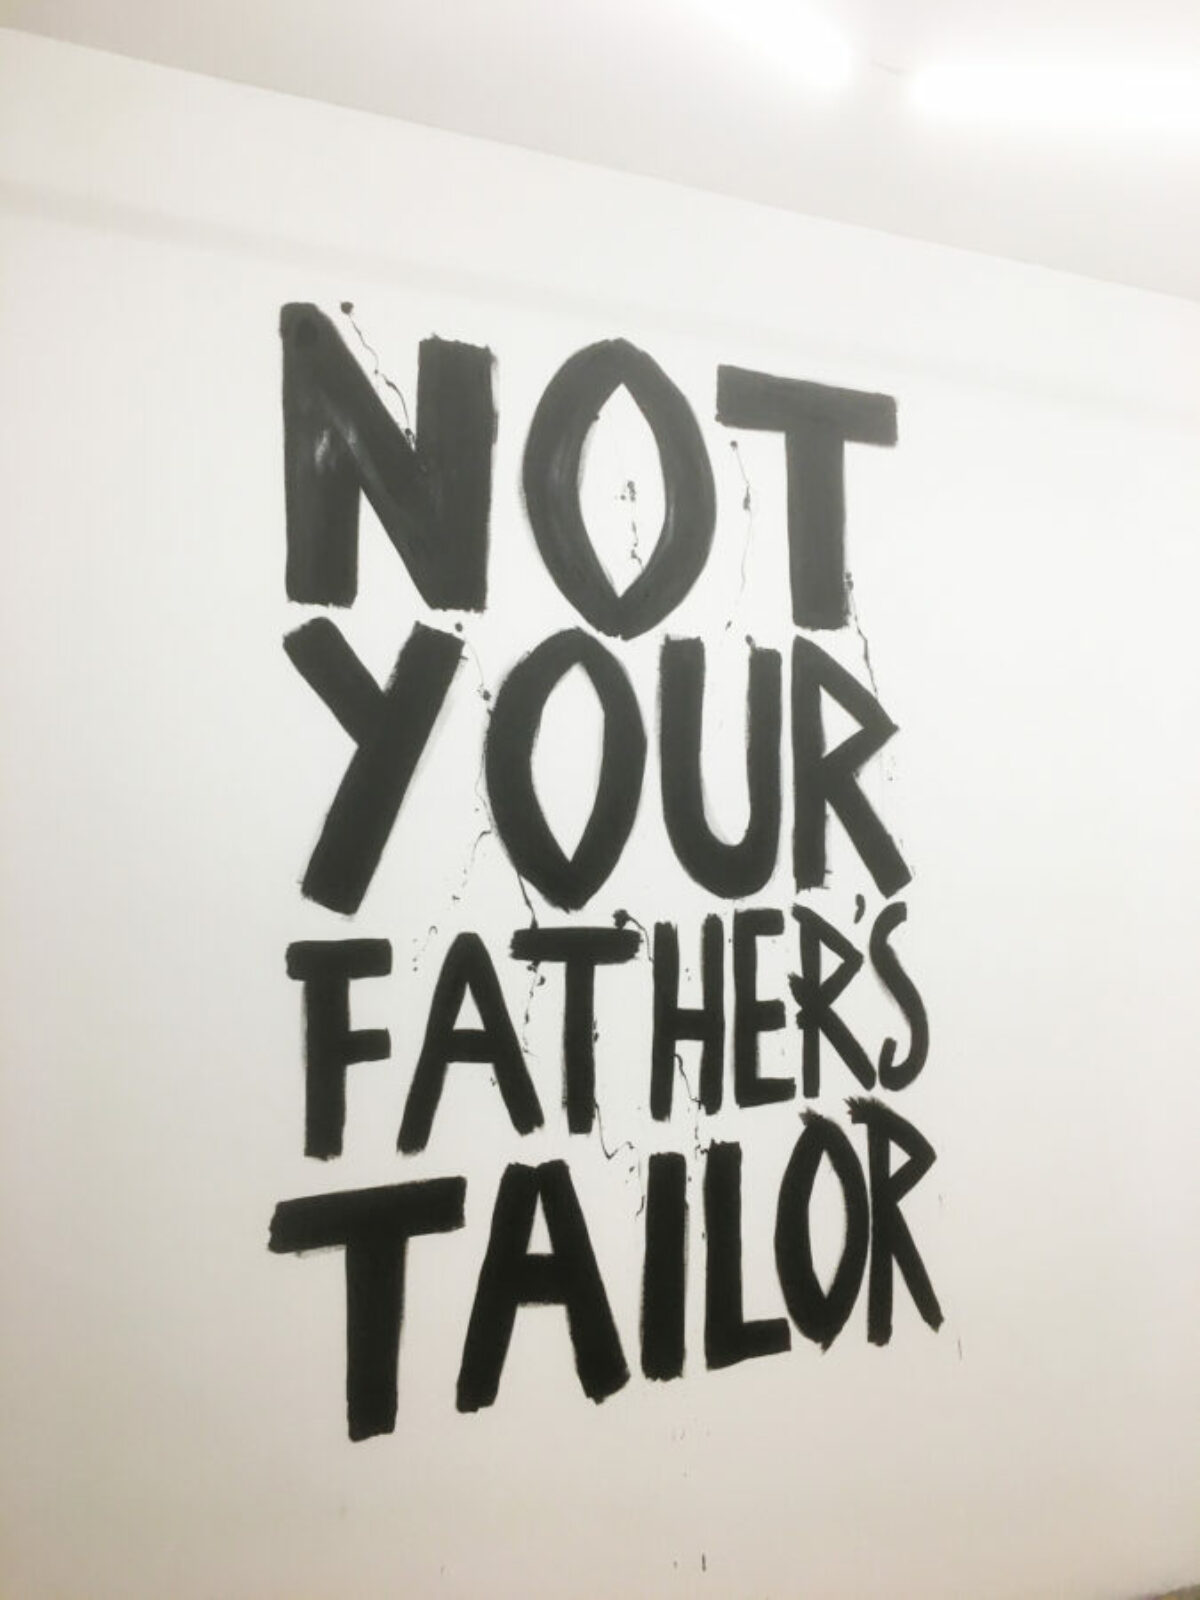 NOT YOUR FATHER'S TAILOR - L ATELIER - Maastricht - Frank Willems